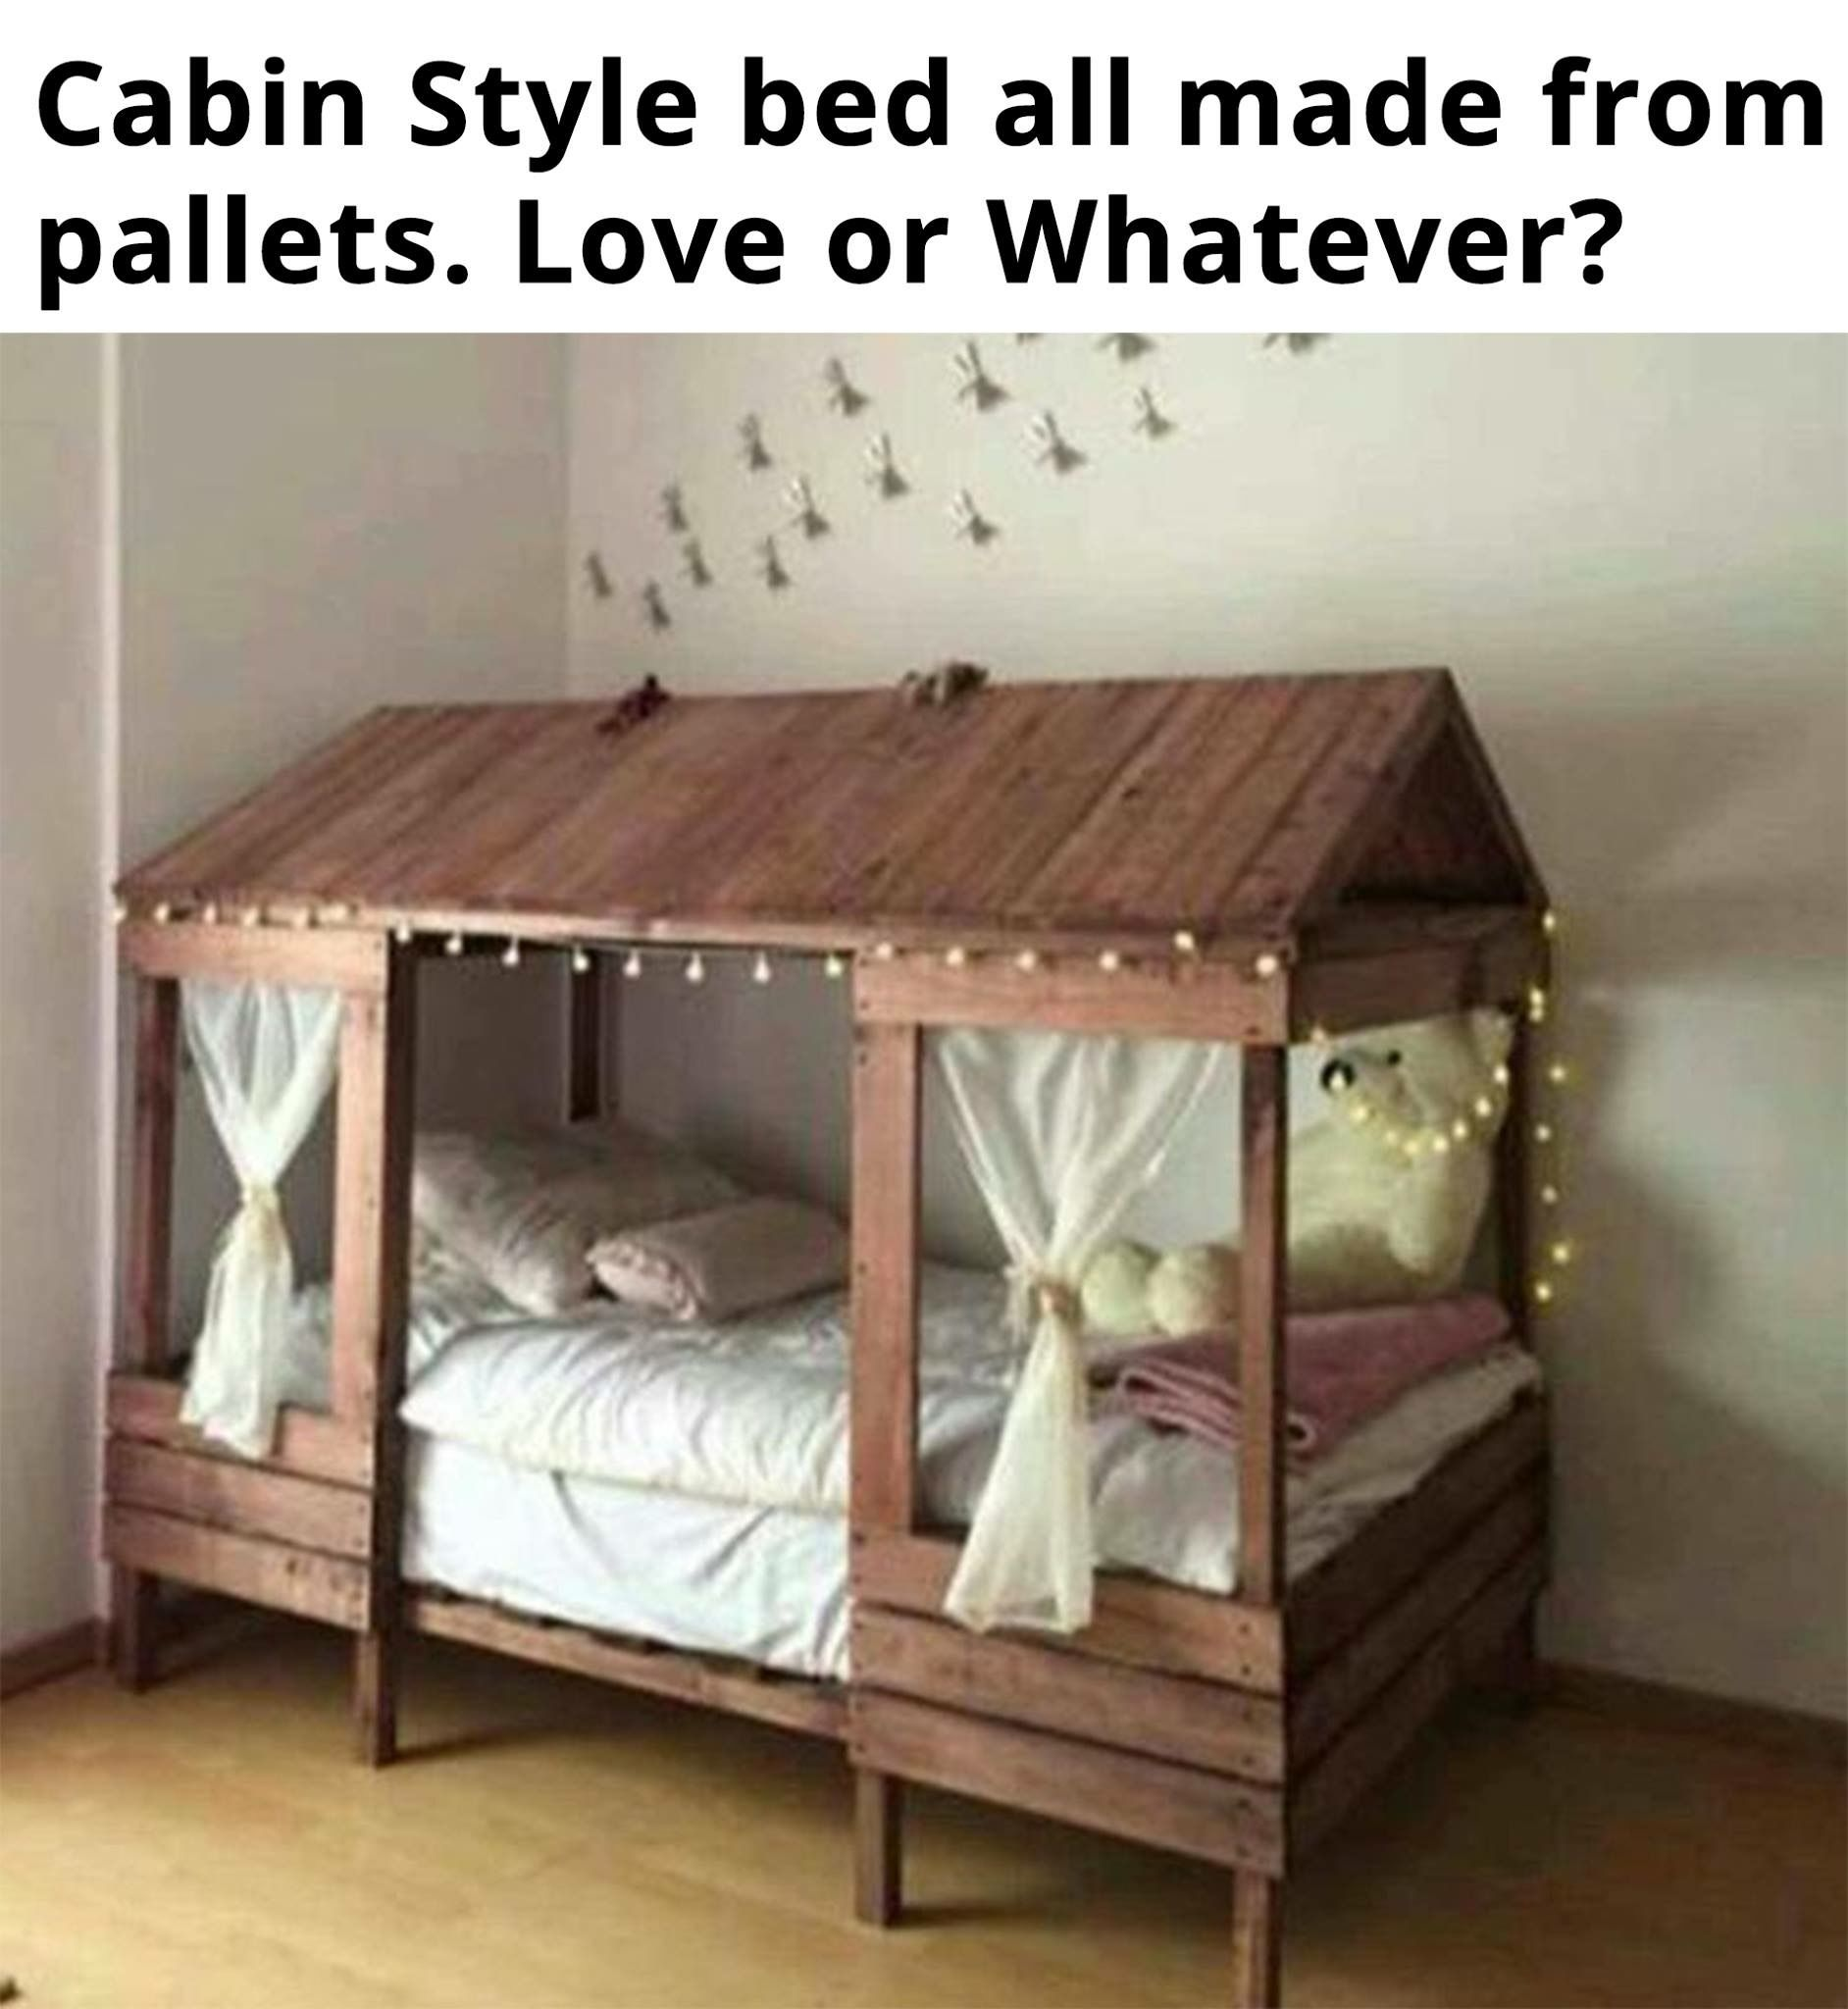 Love This Idea For A Toddler Bed Looks Simple Enough To Make As Diy Too